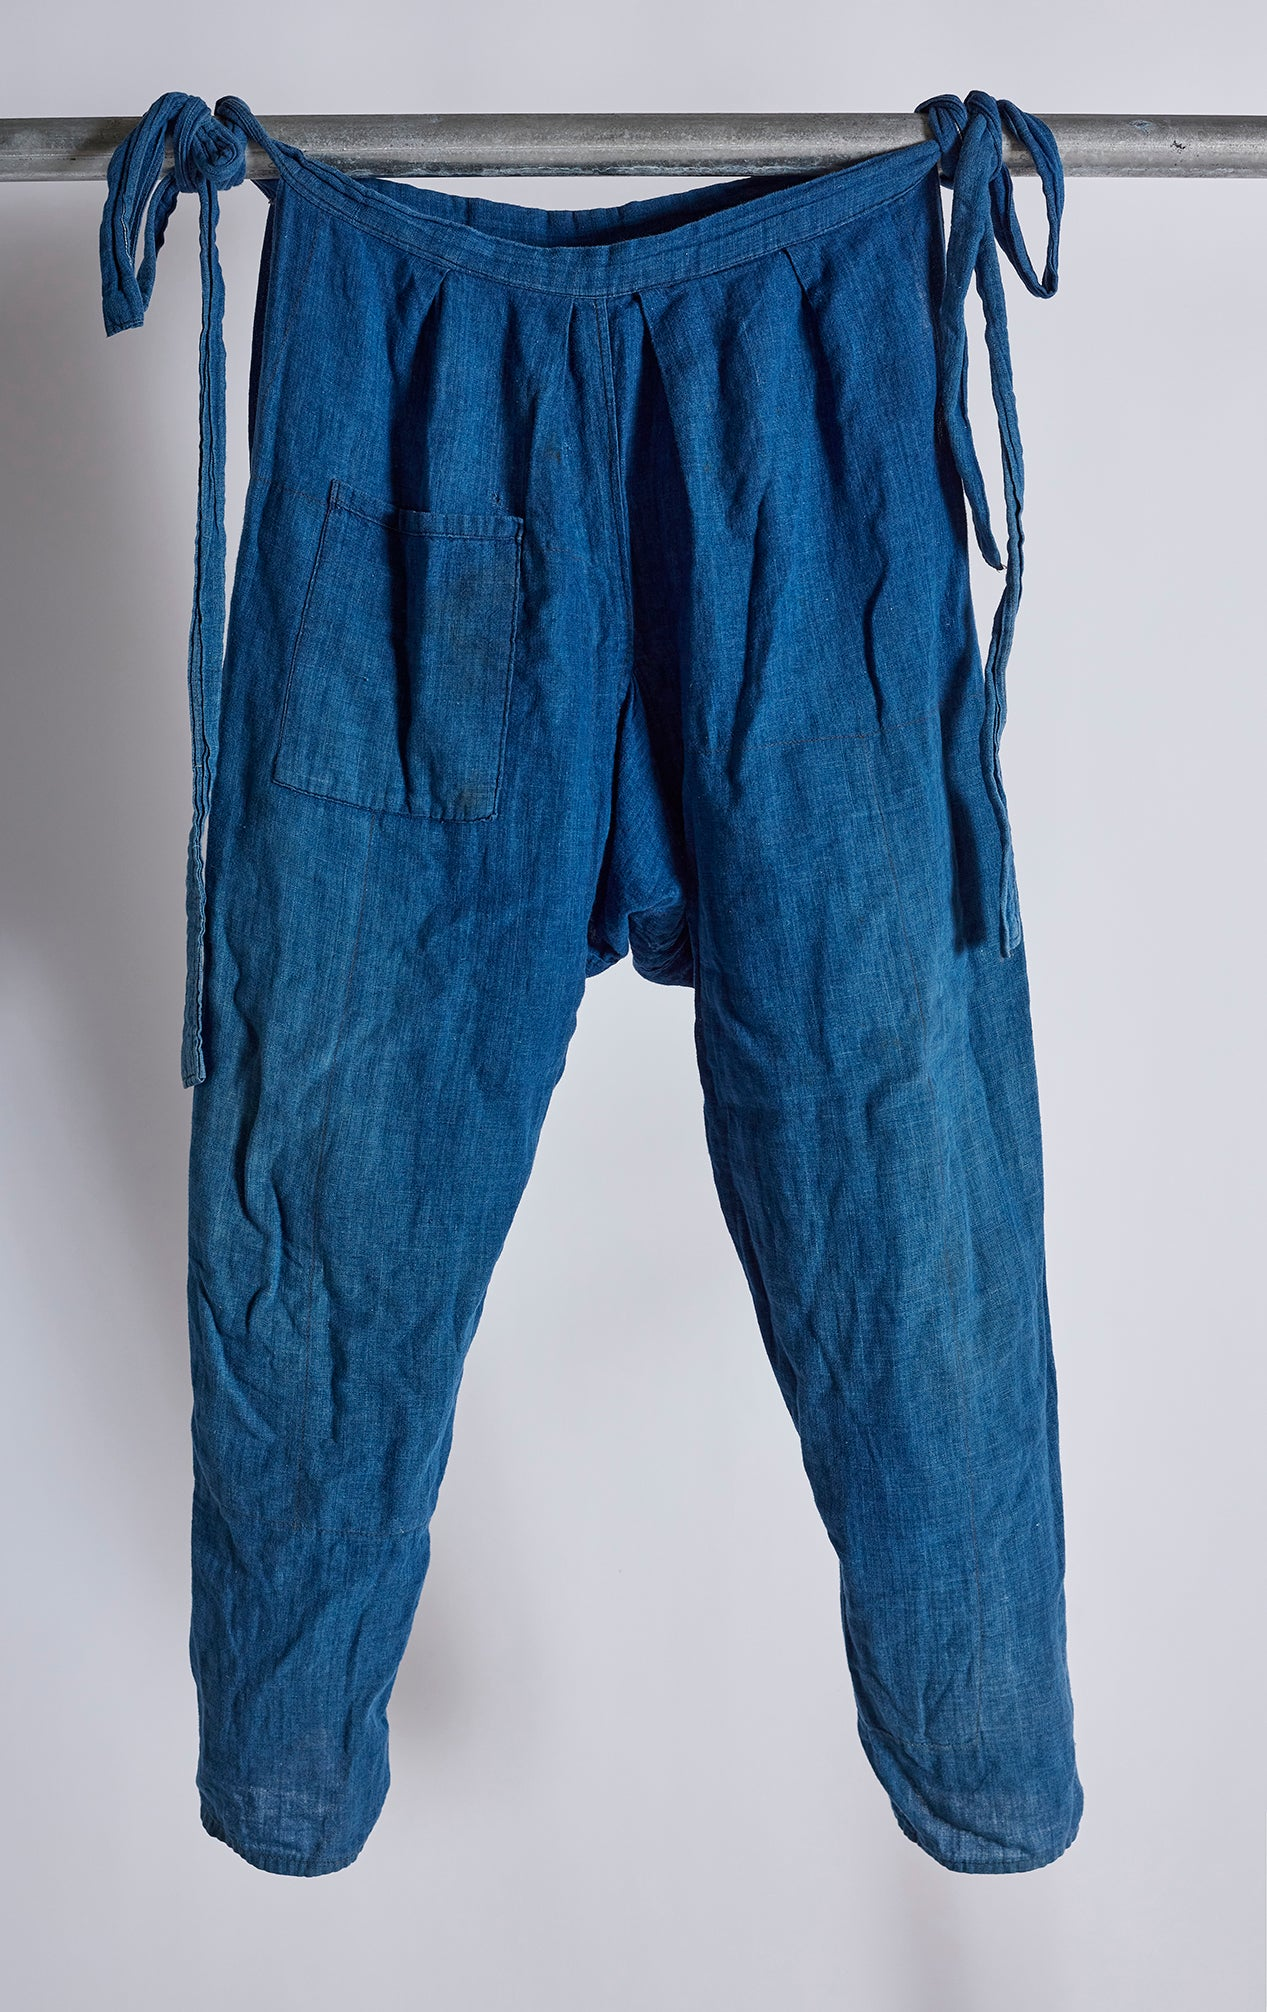 universal works UW kyoto Pant journal Monpe trouser